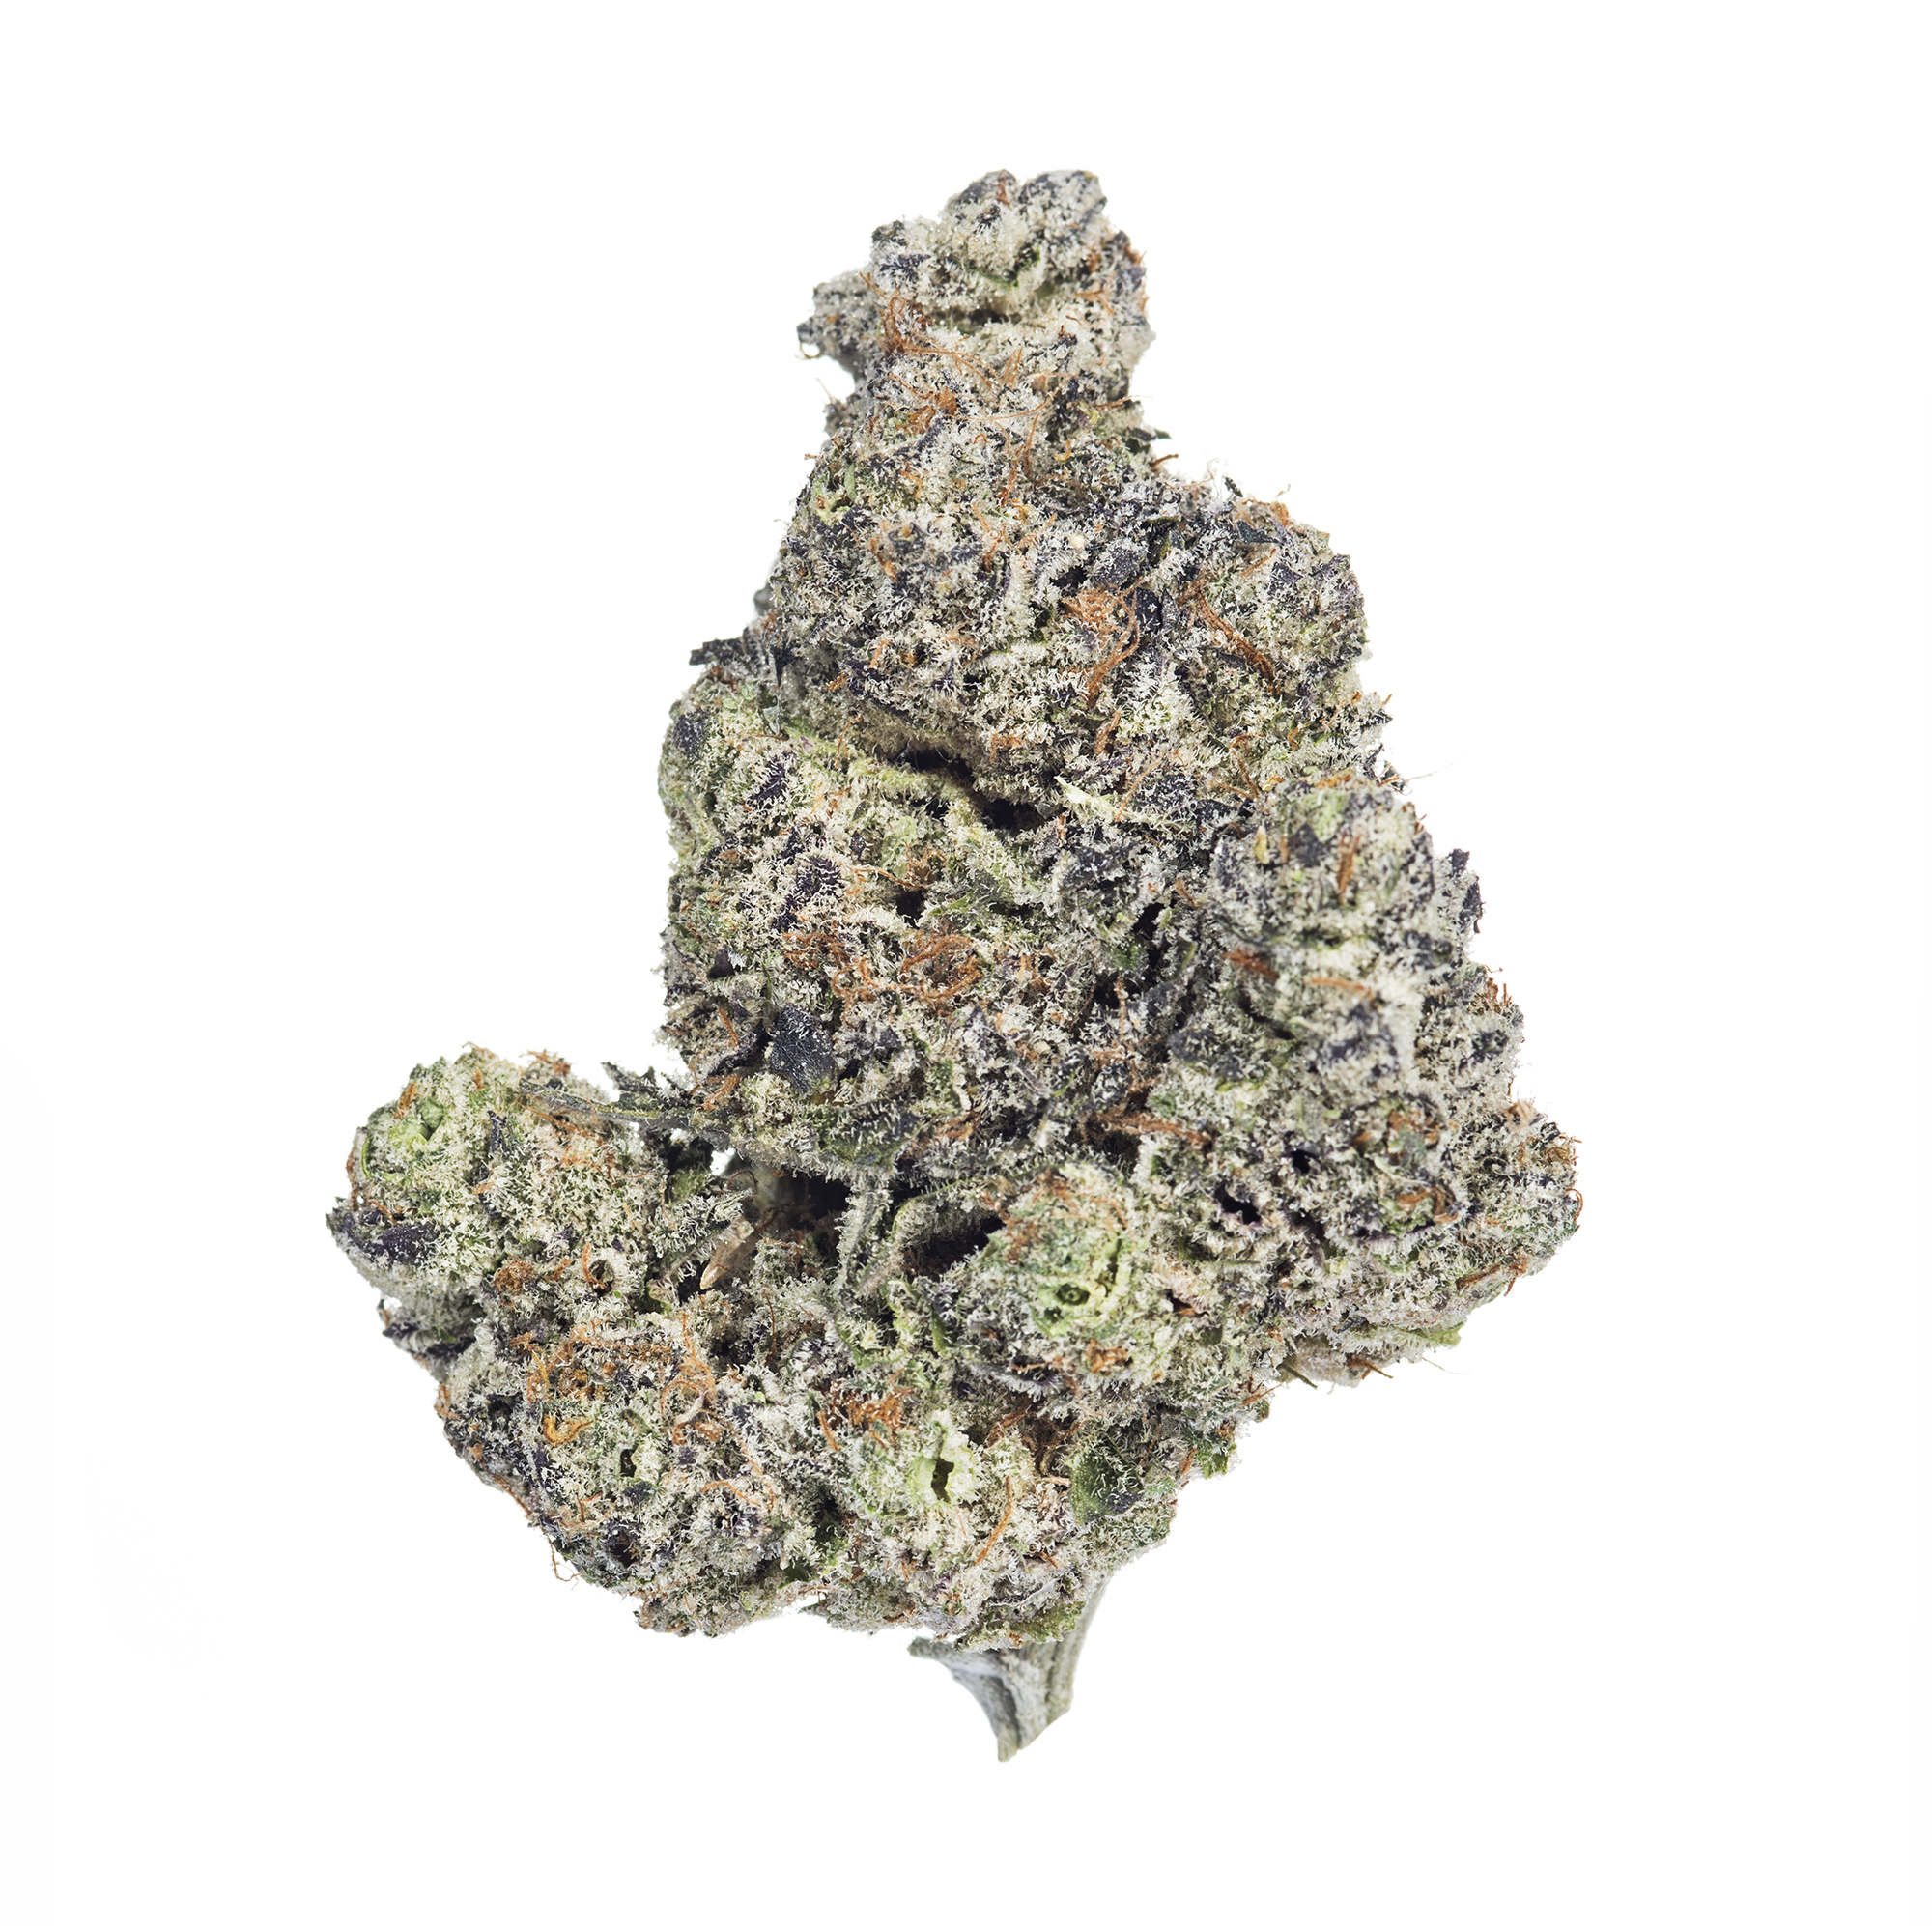 MENDO BREATH white